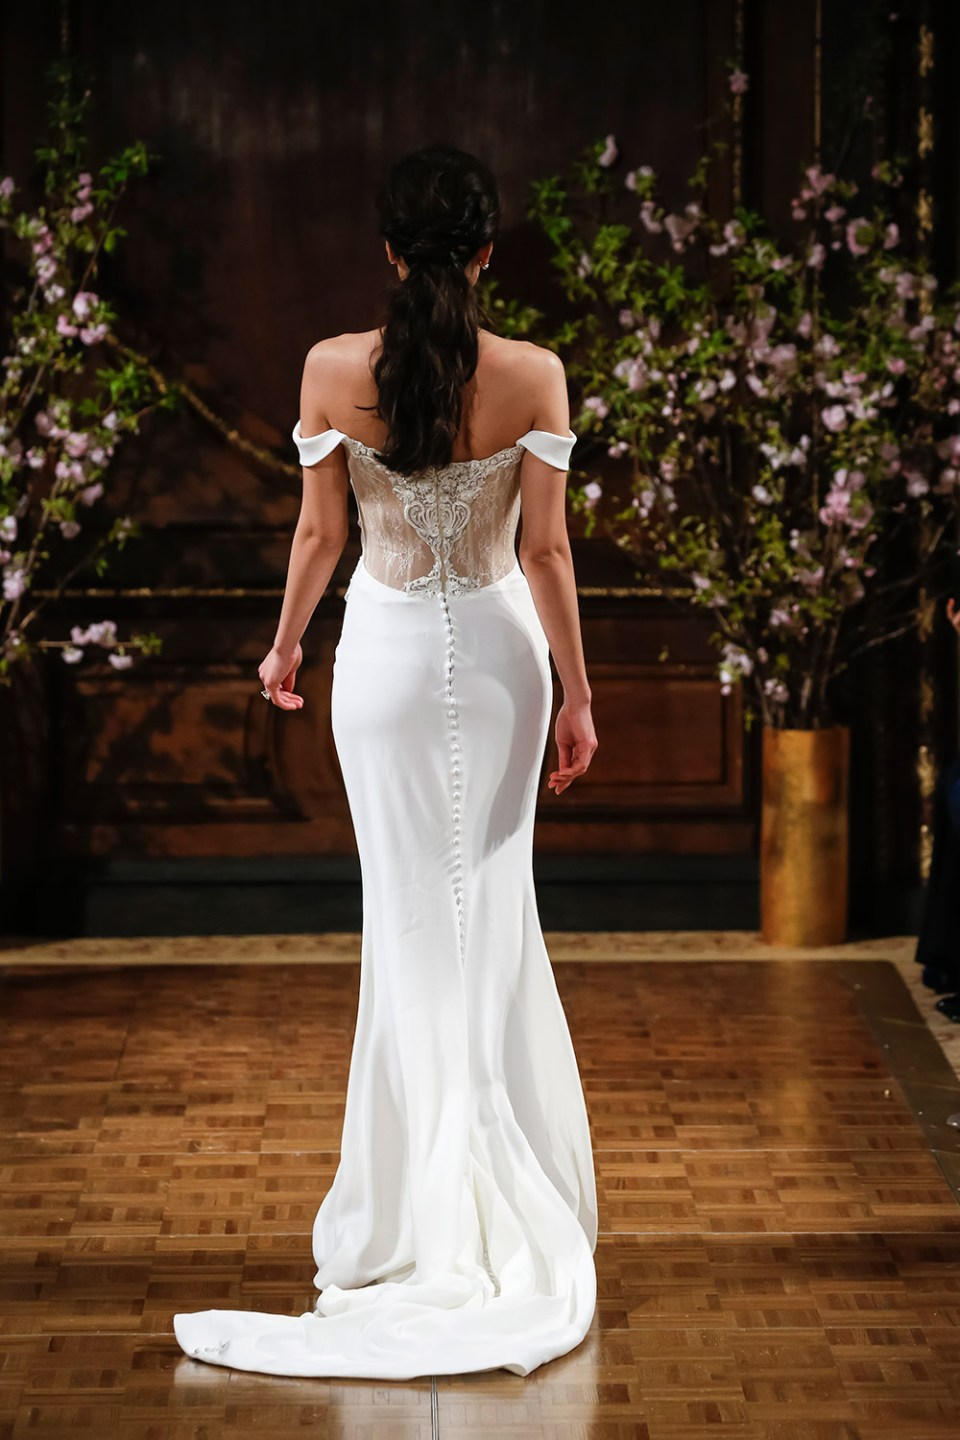 Montana - Isabelle Armstrong Spring 2017 Bridal Collection. www.theweddingnotebook.com